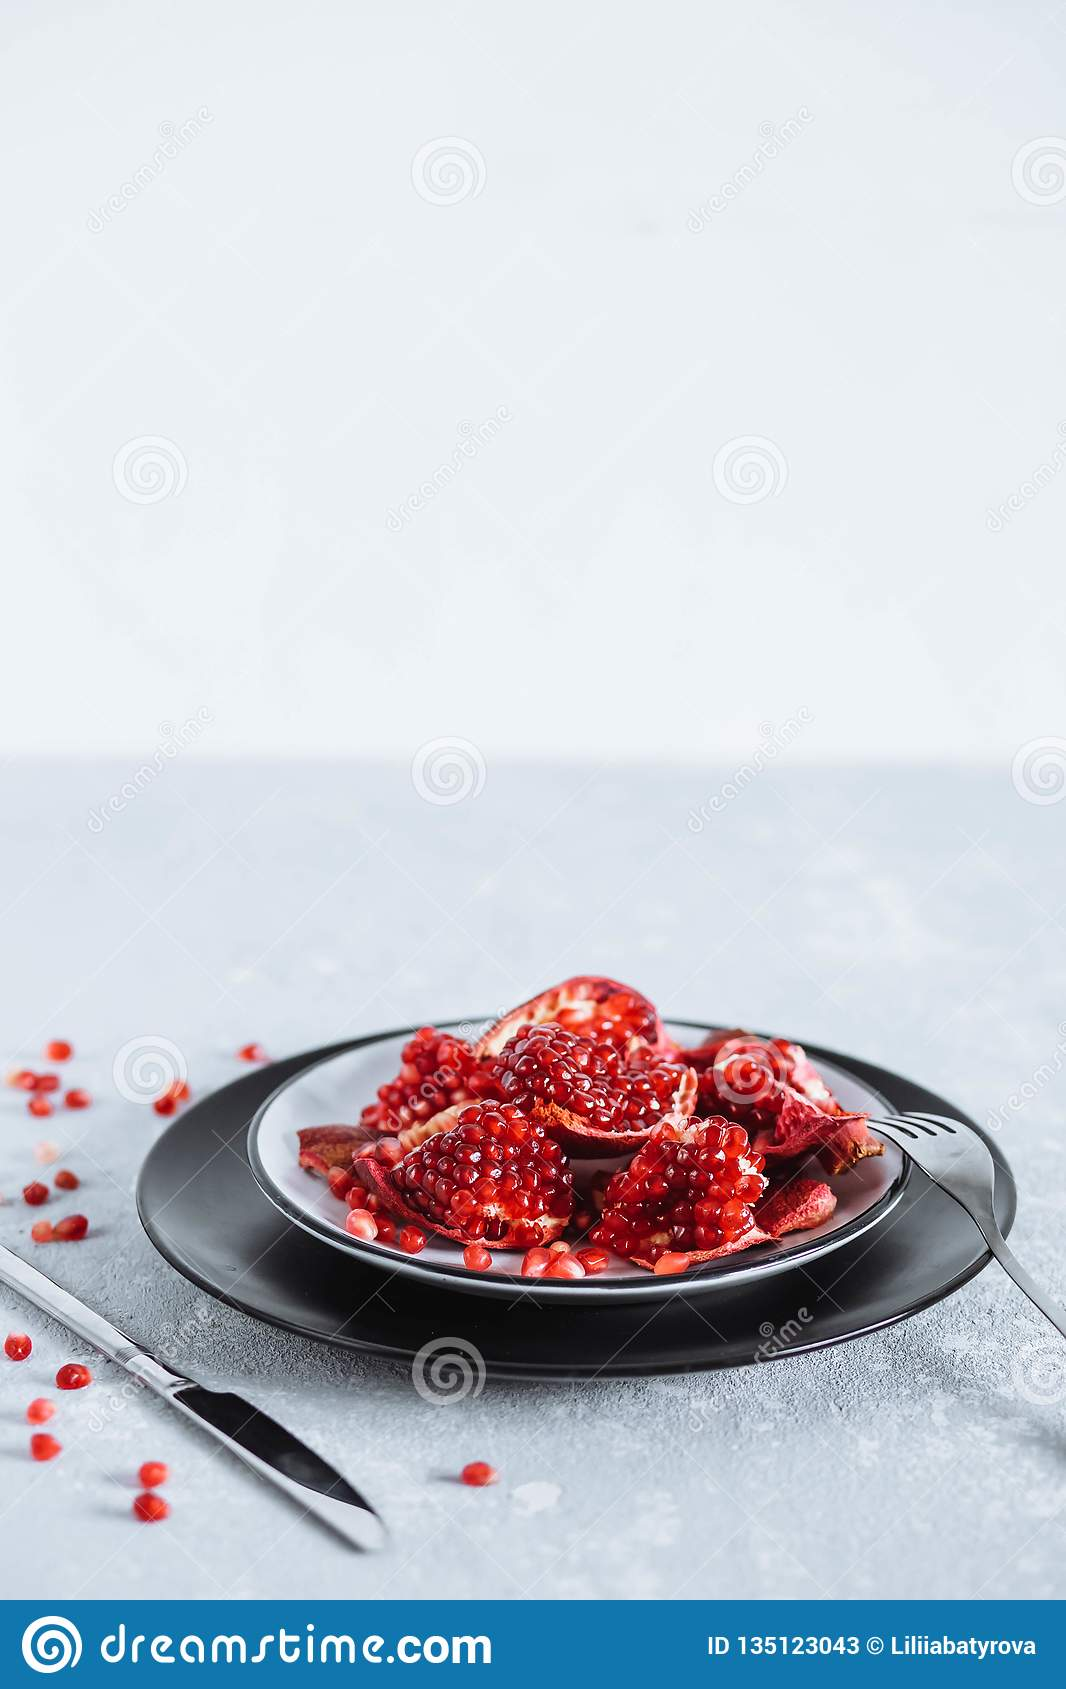 Beautiful slices of juicy red pomegranate on a gray table with Cutlery. Healthy food, fruit, diet